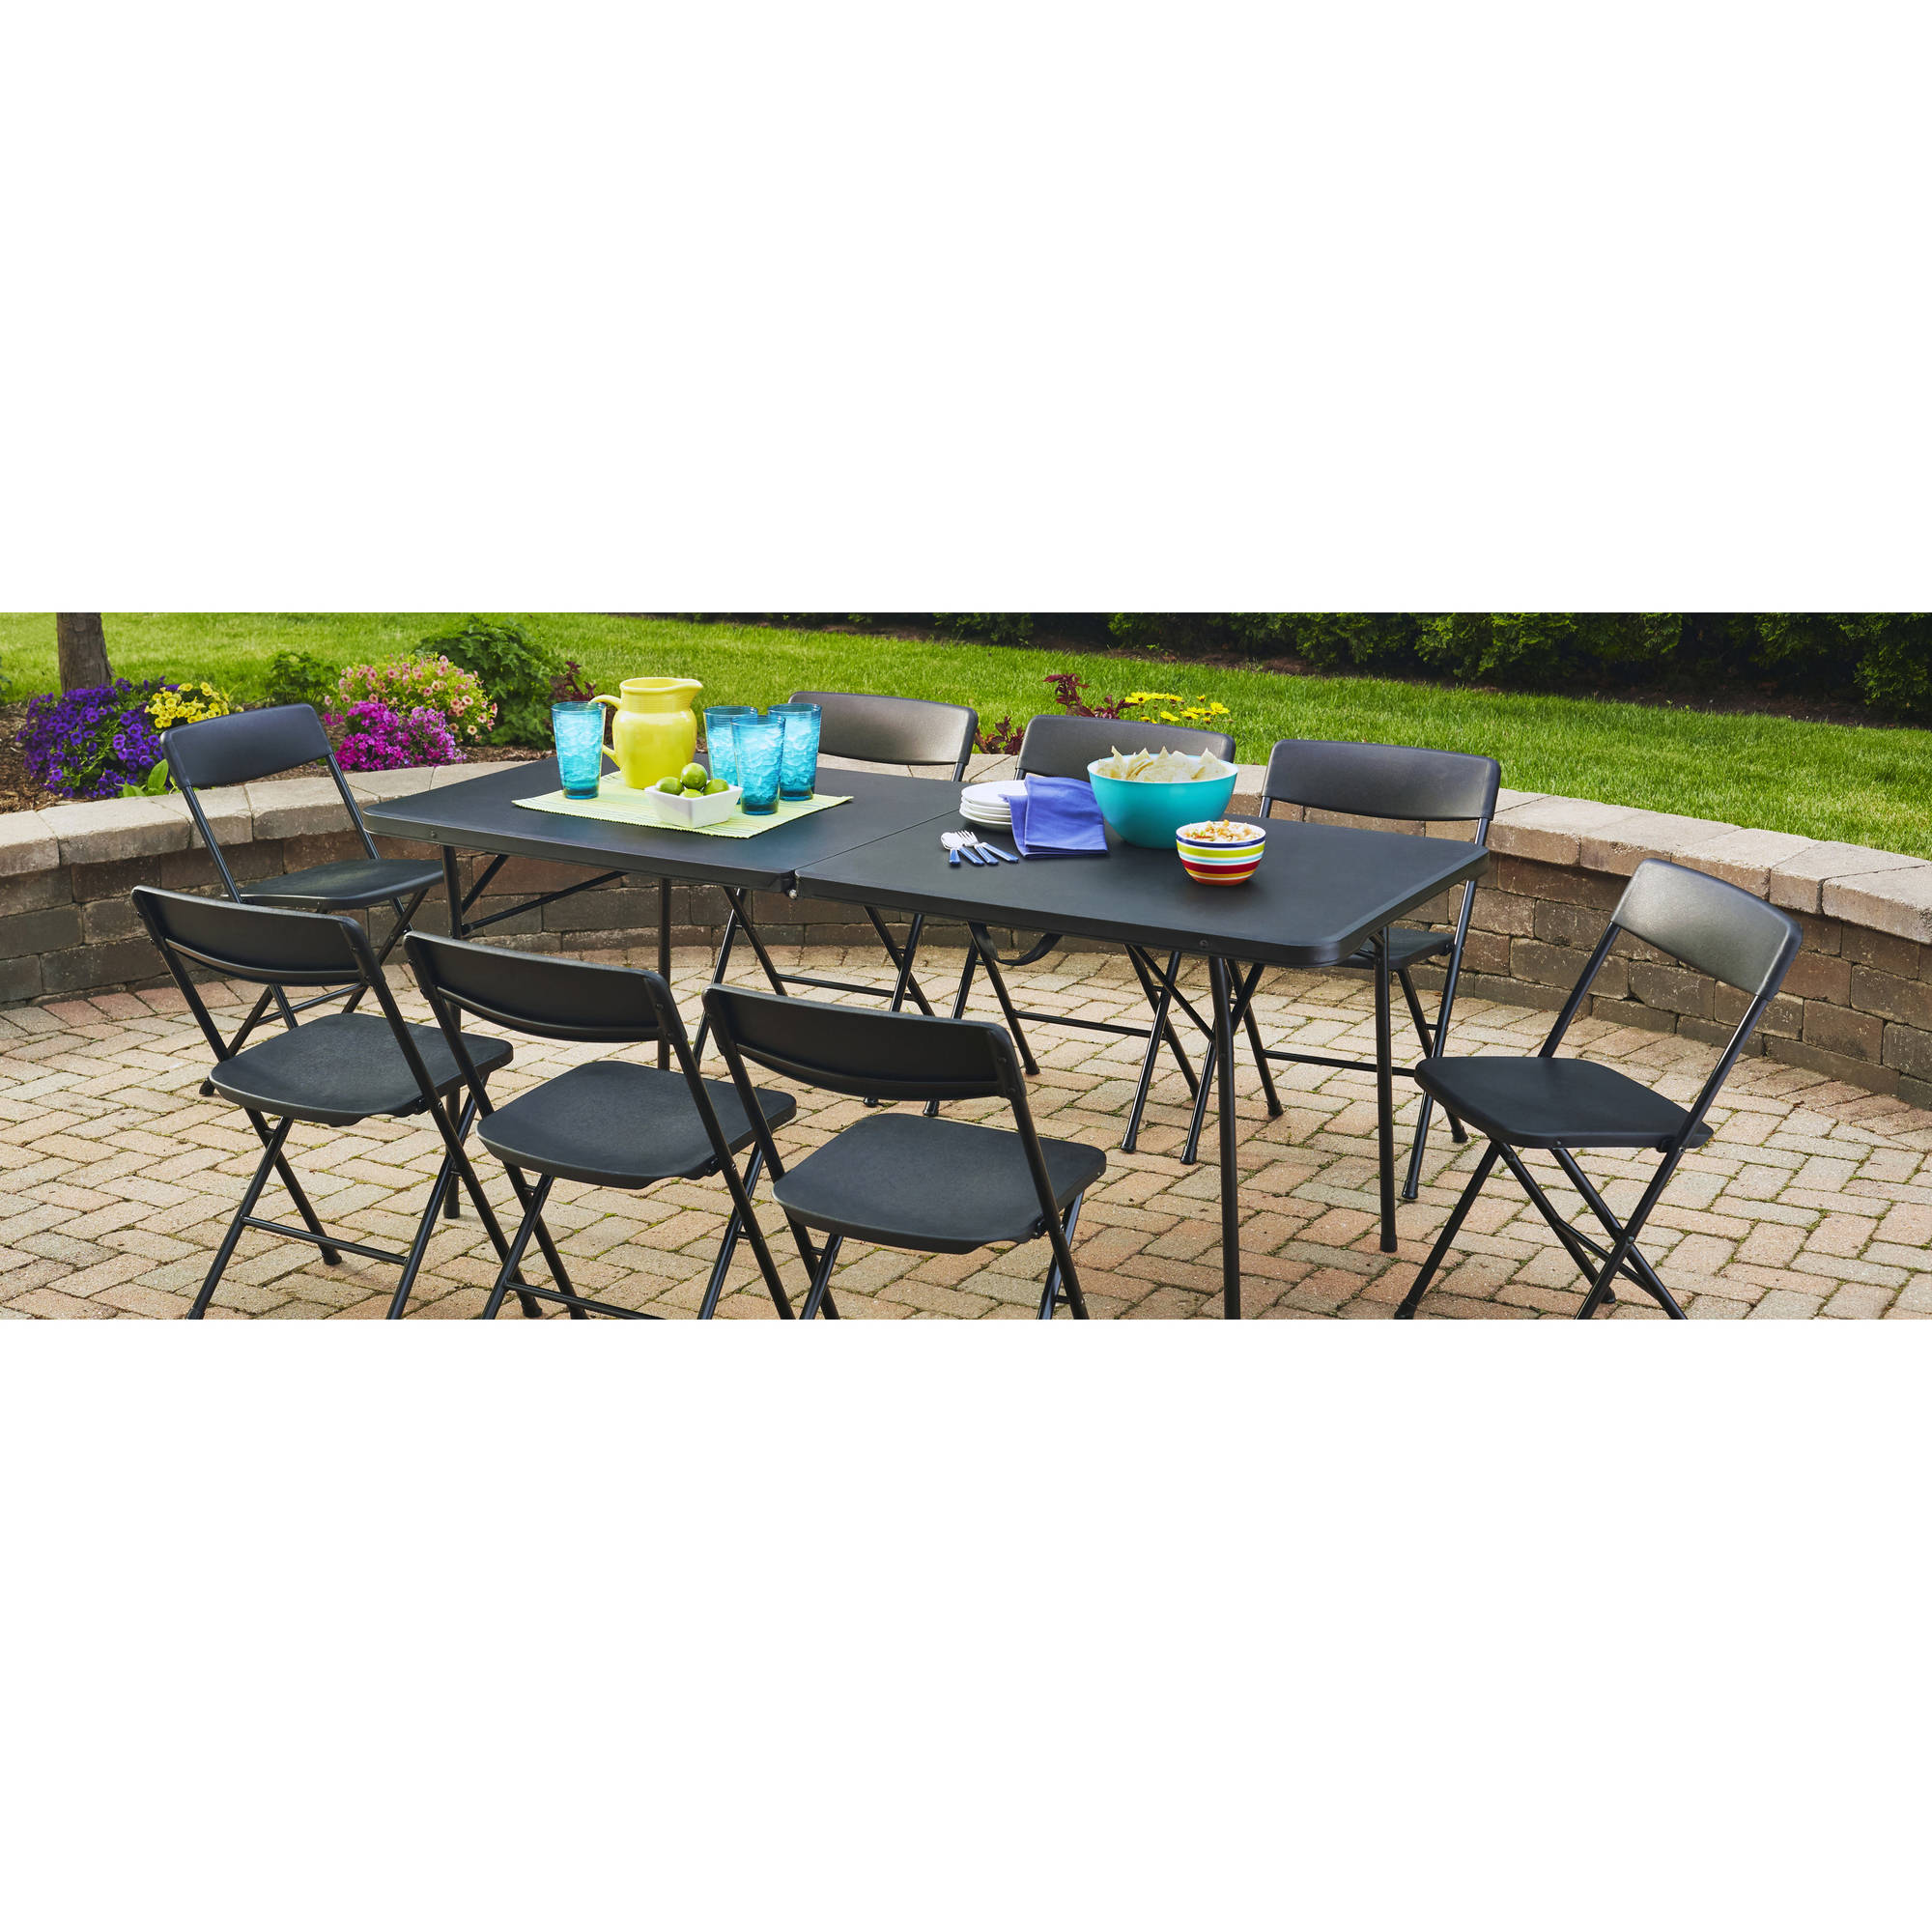 Mainstays 6' Fold-in-Half Table, Black